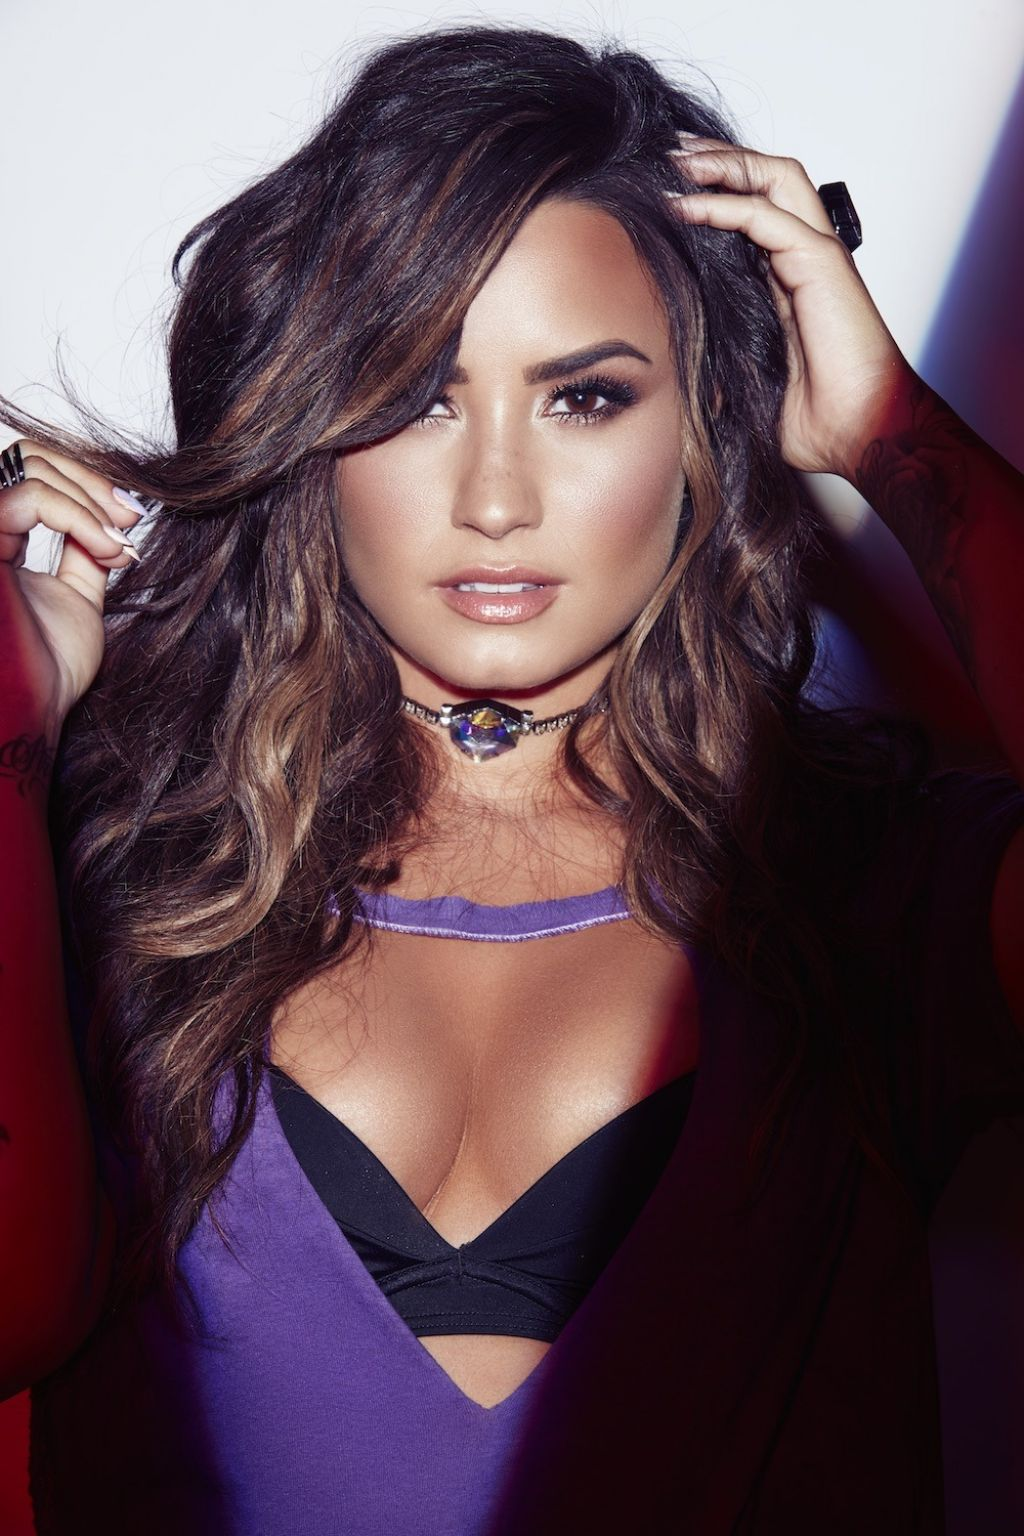 Demi Lovato - Photoshoot for Sorry Not Sorry, July 2017